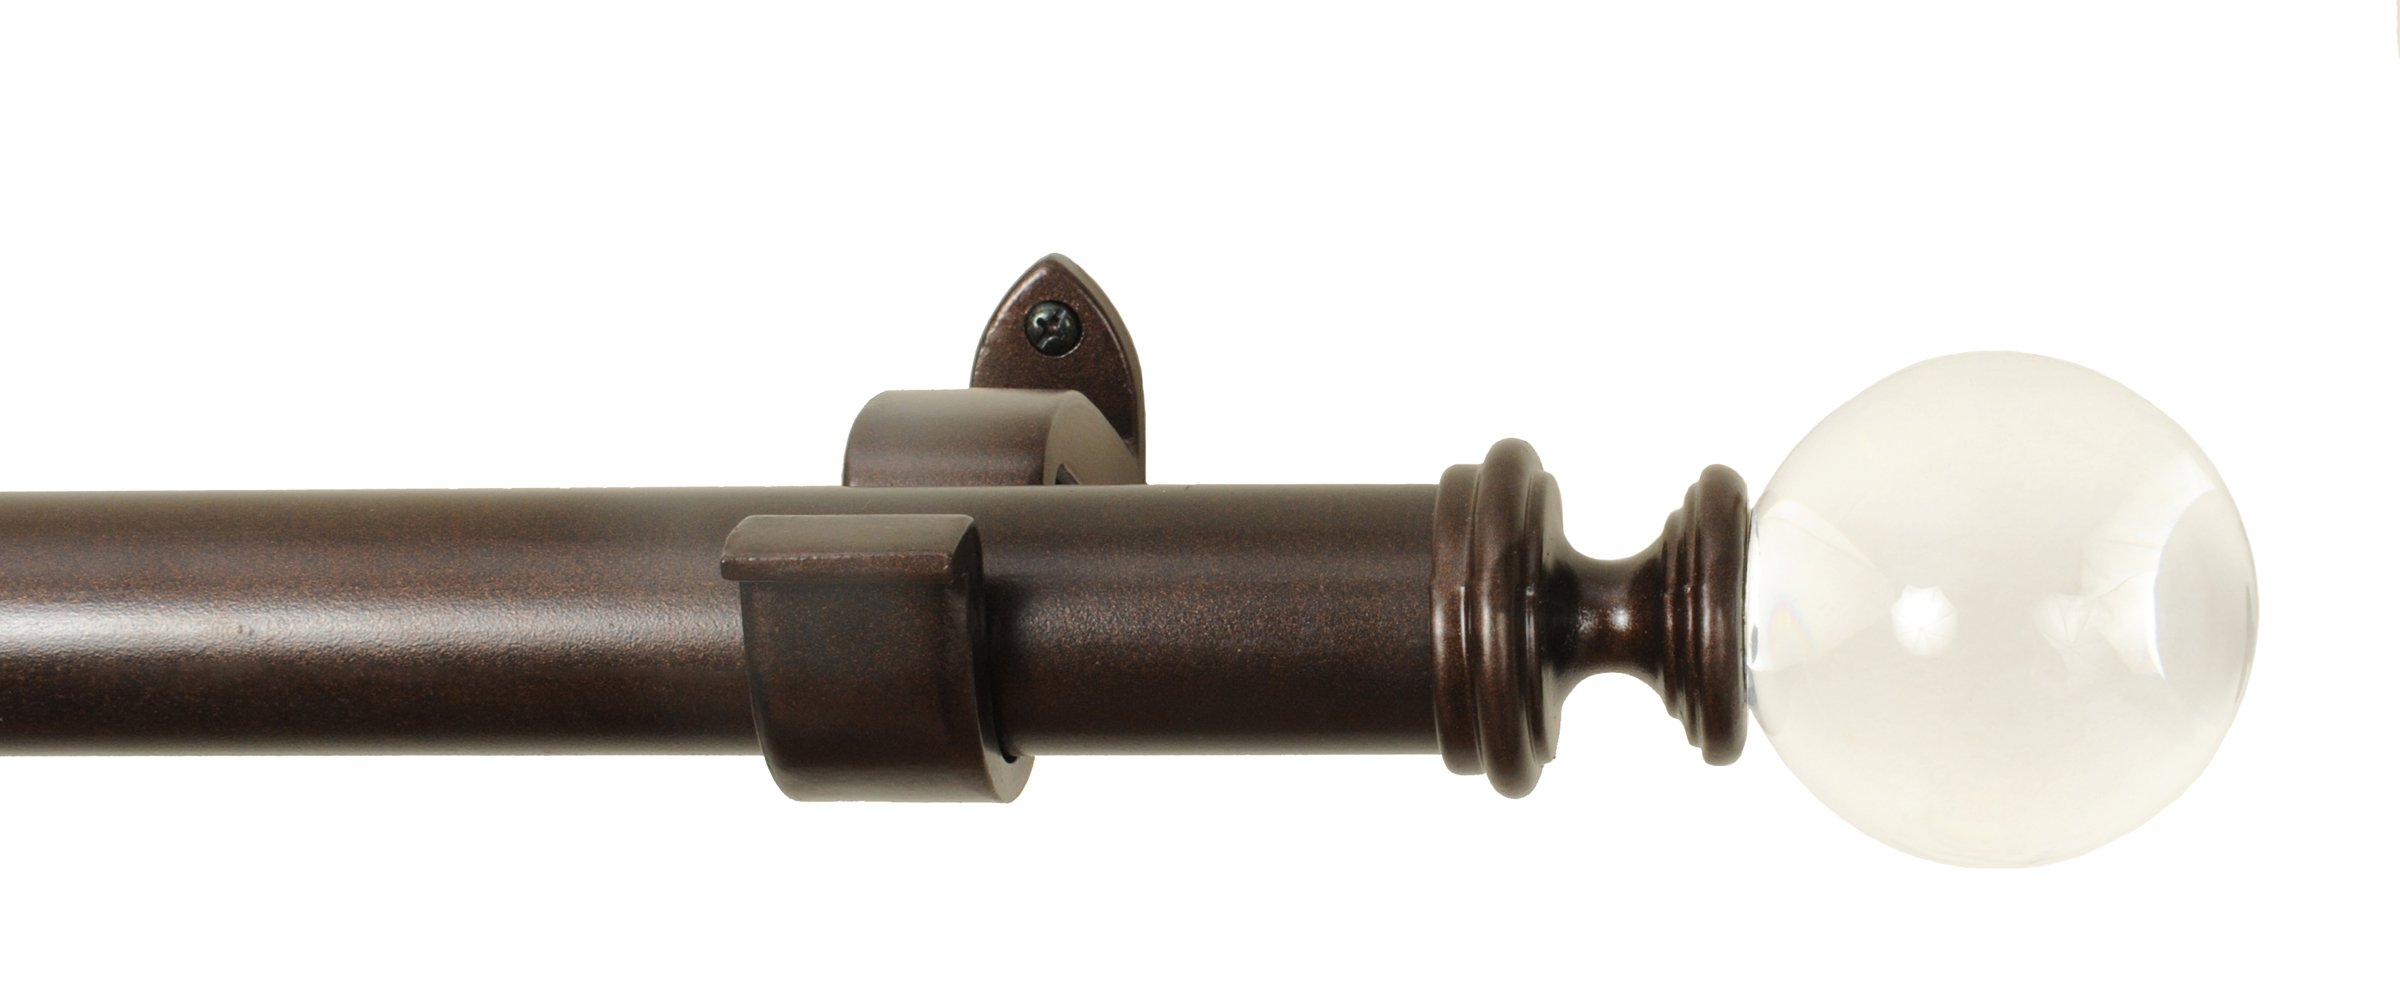 Rulu 52 by 144-Inch Curtain Rod with 1-1/4 Pipe, Acrylic Ball, Oil Rubbed